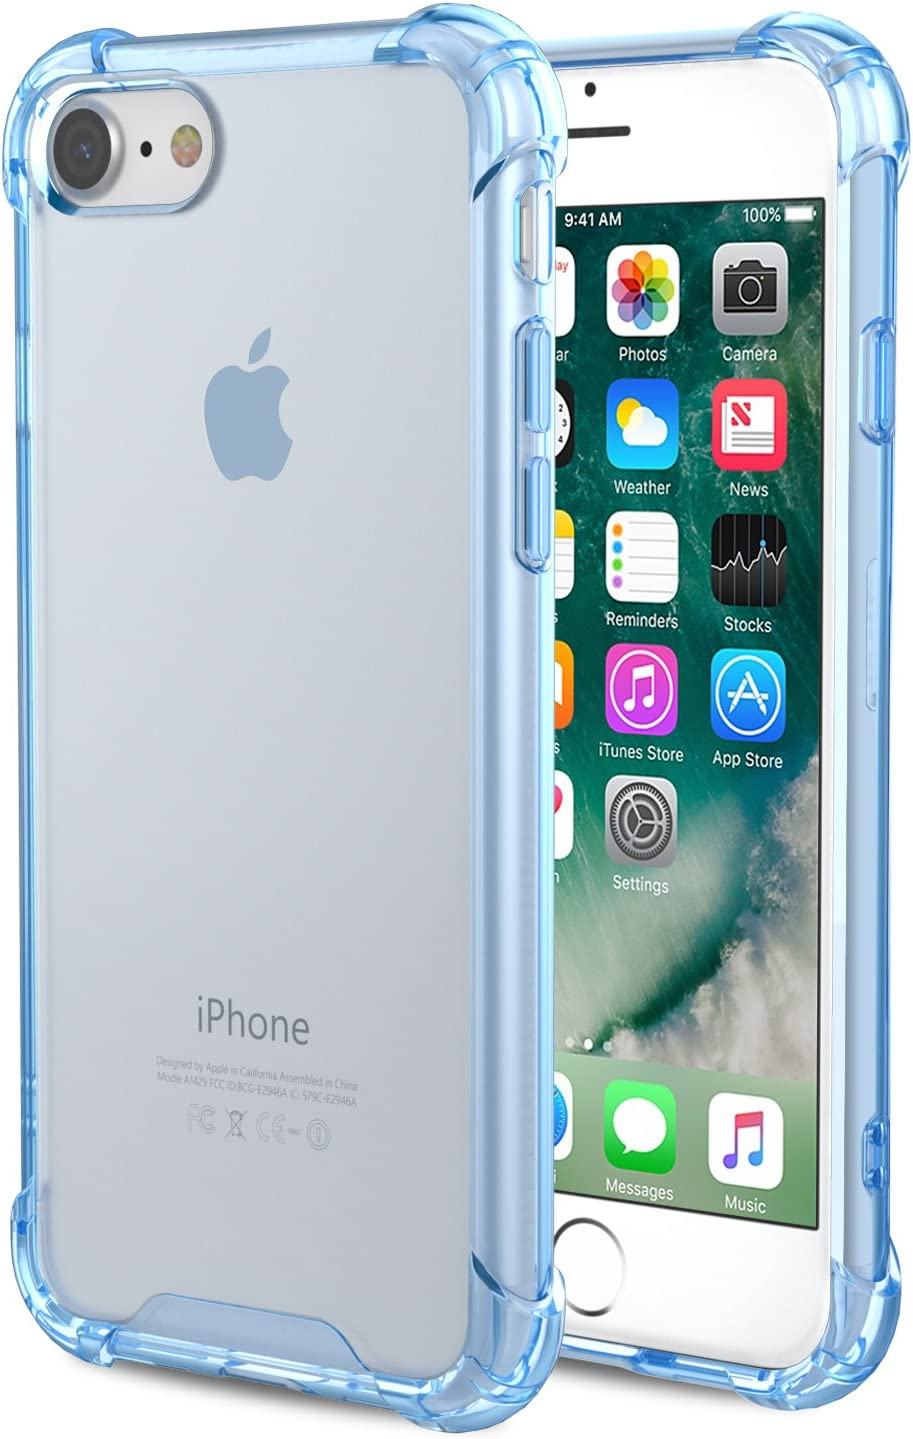 MoKo Funda Compatible con Nuevo iPhone SE 2020 Funda/iPhone 8 Funda/iPhone 7 Funda, Anti-Arañazos Híbrido Funda Tecnología Esquinas + Panel Duro para iPhone SE / 8/7, Azul Transparente